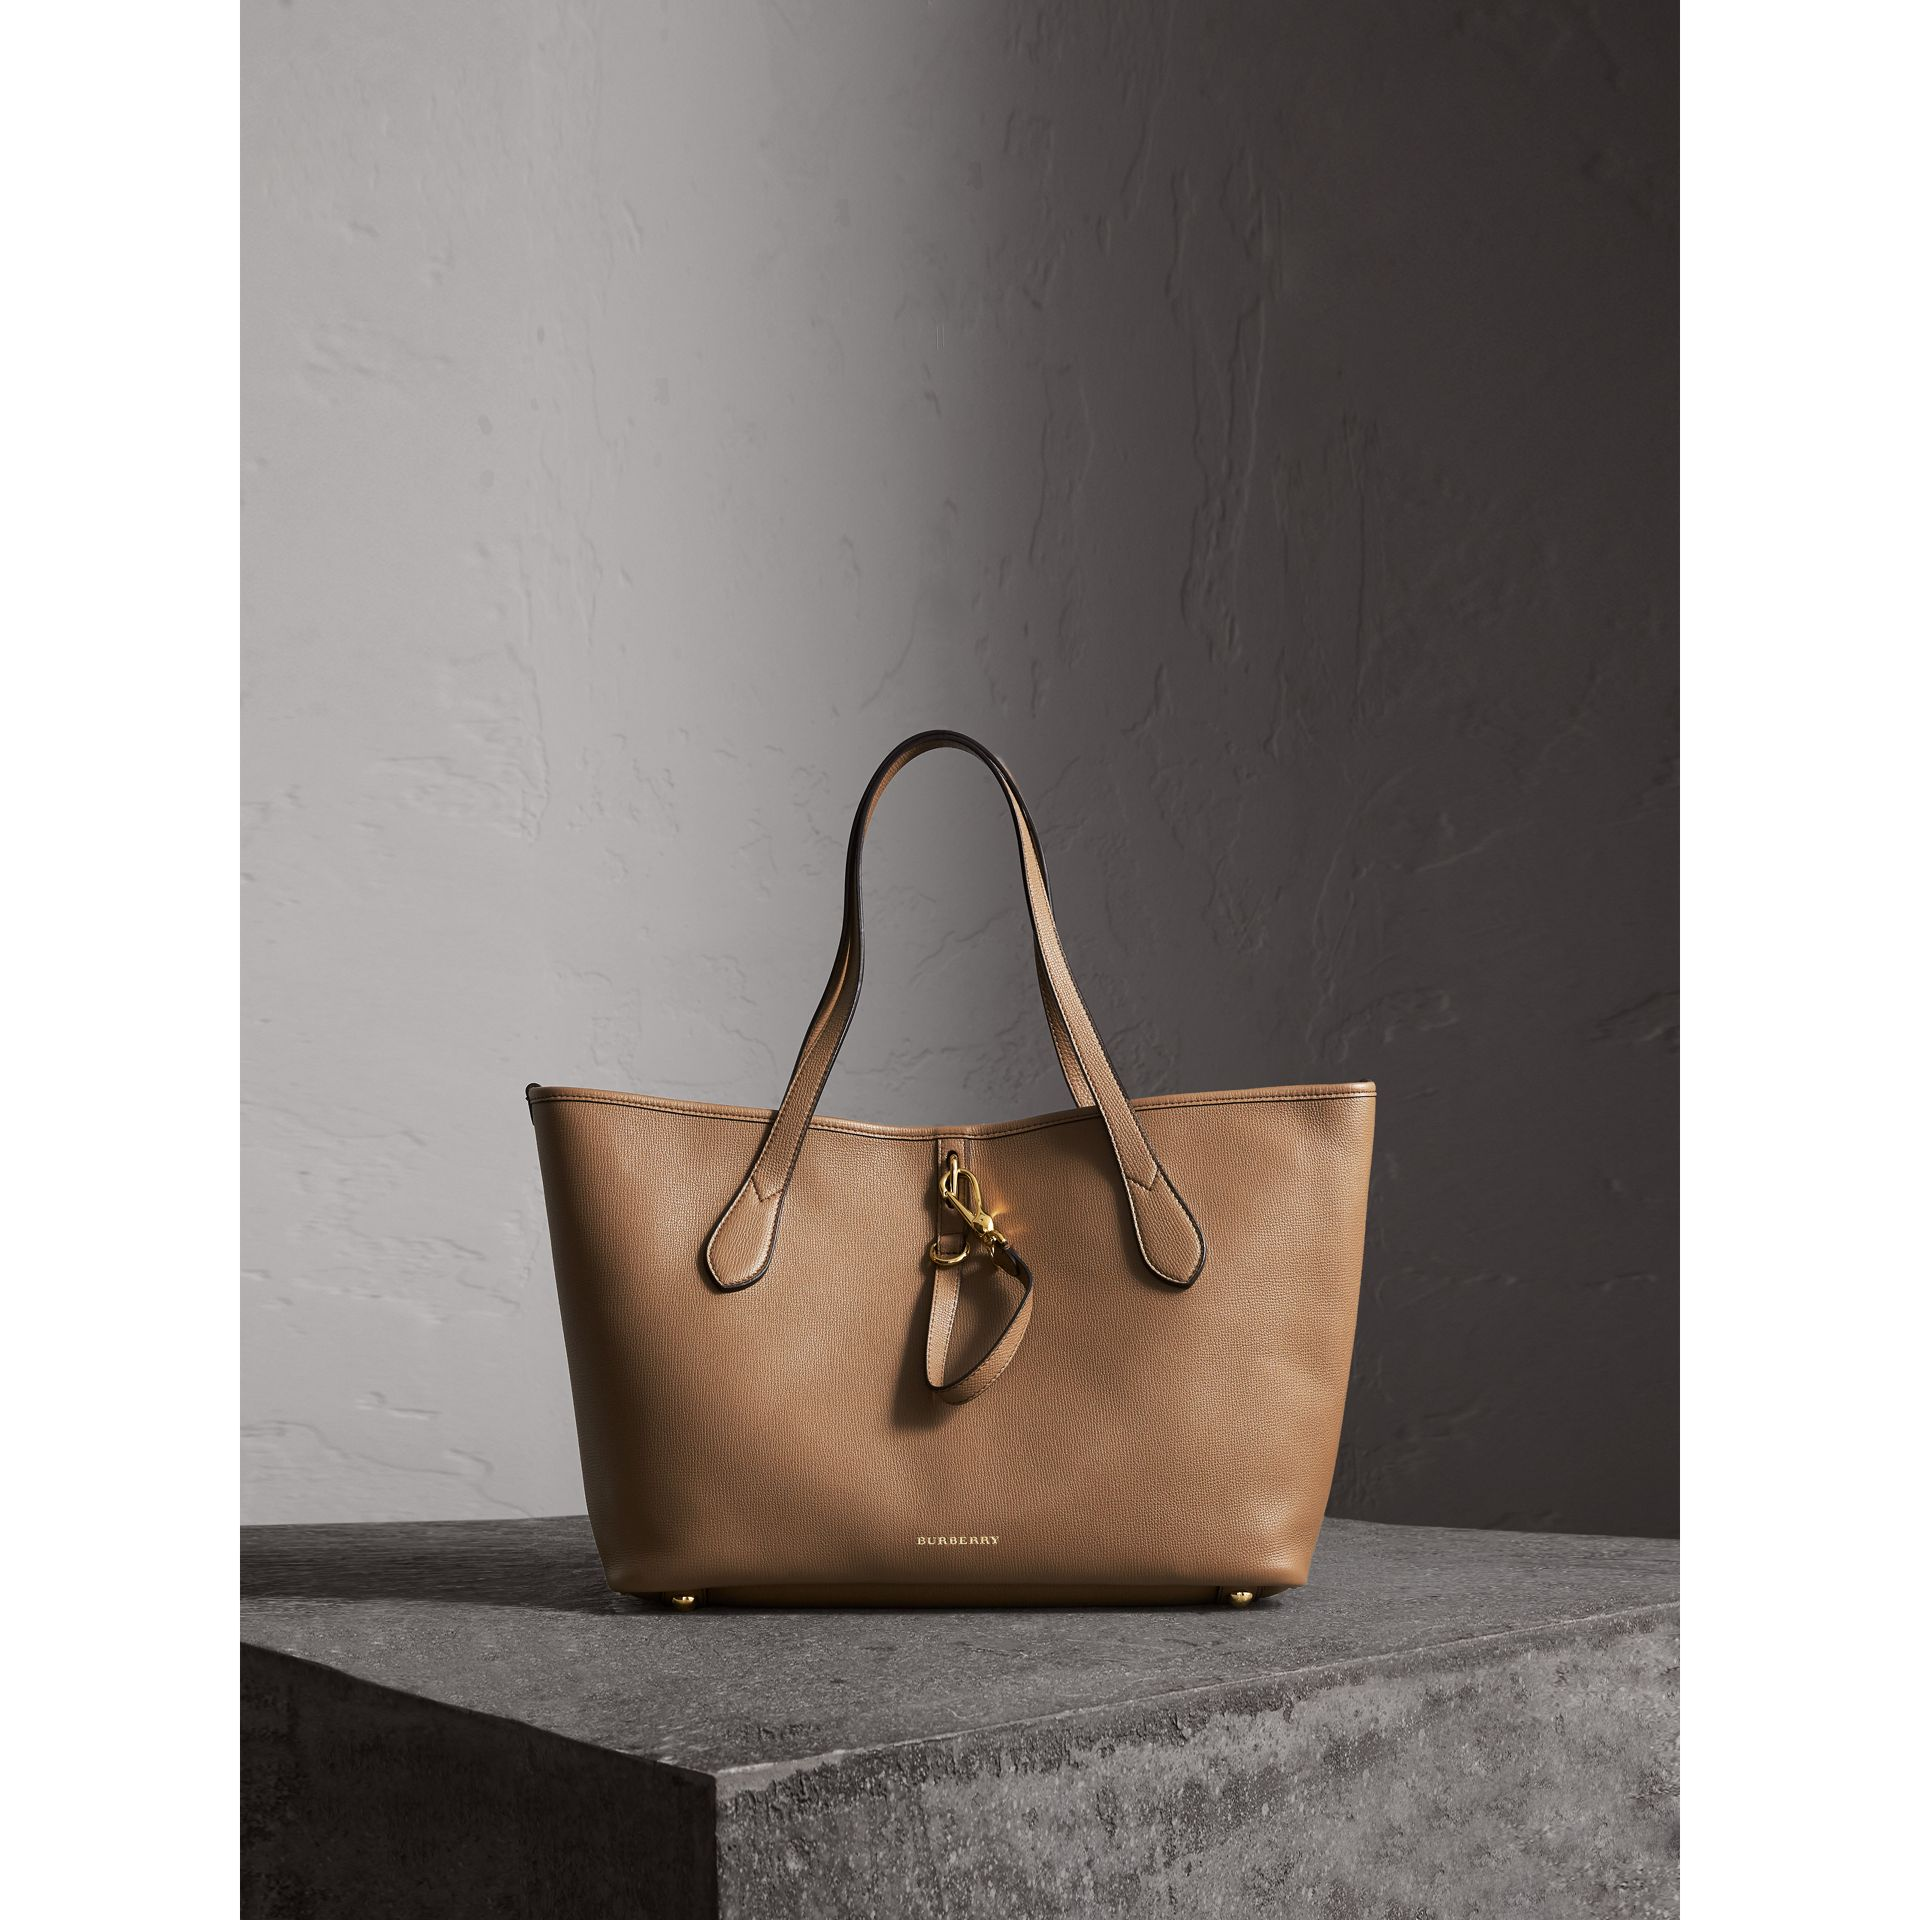 Medium Grainy Leather Tote Bag in Dark Sand - Women | Burberry Australia - gallery image 1